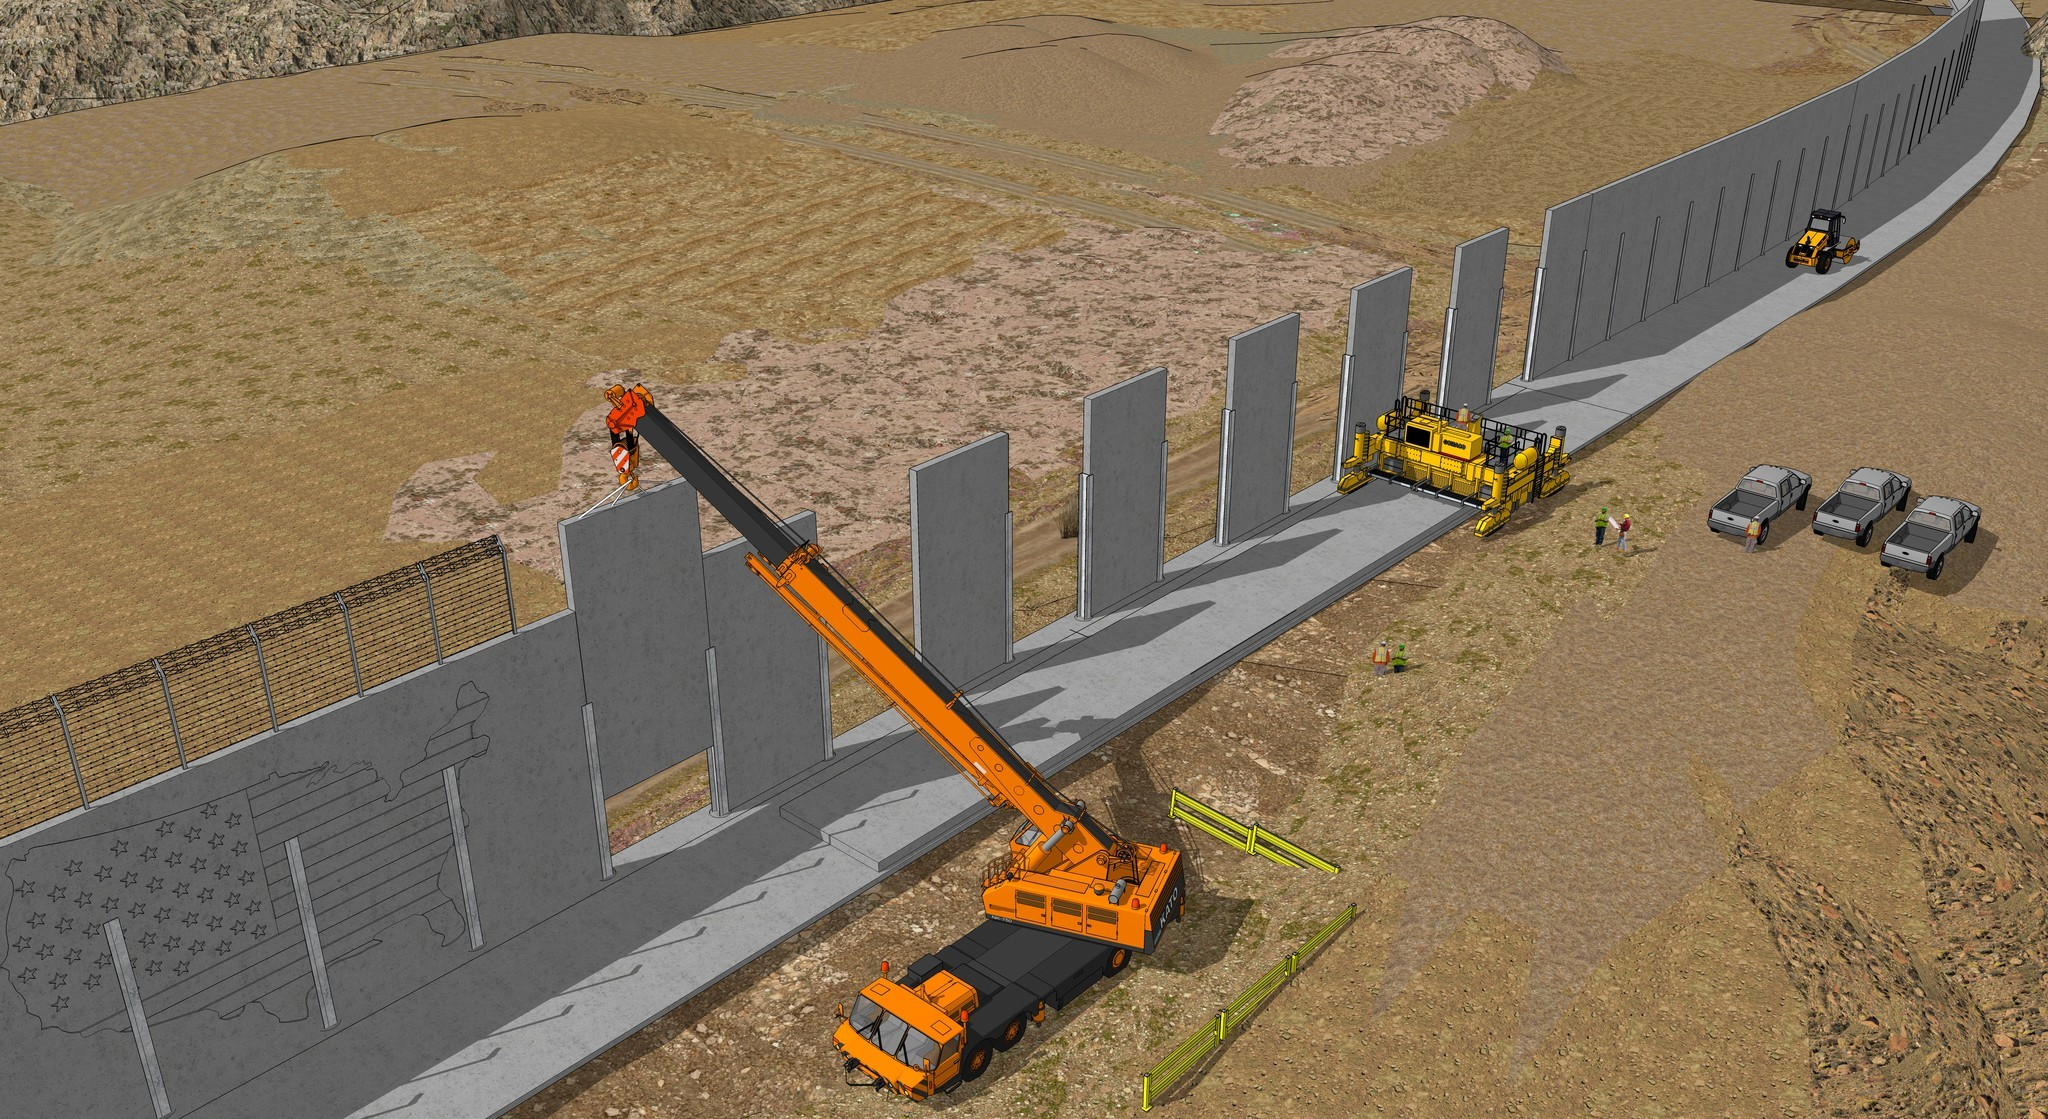 Exclusive preview trump border wall proposals the san for New construction design ideas